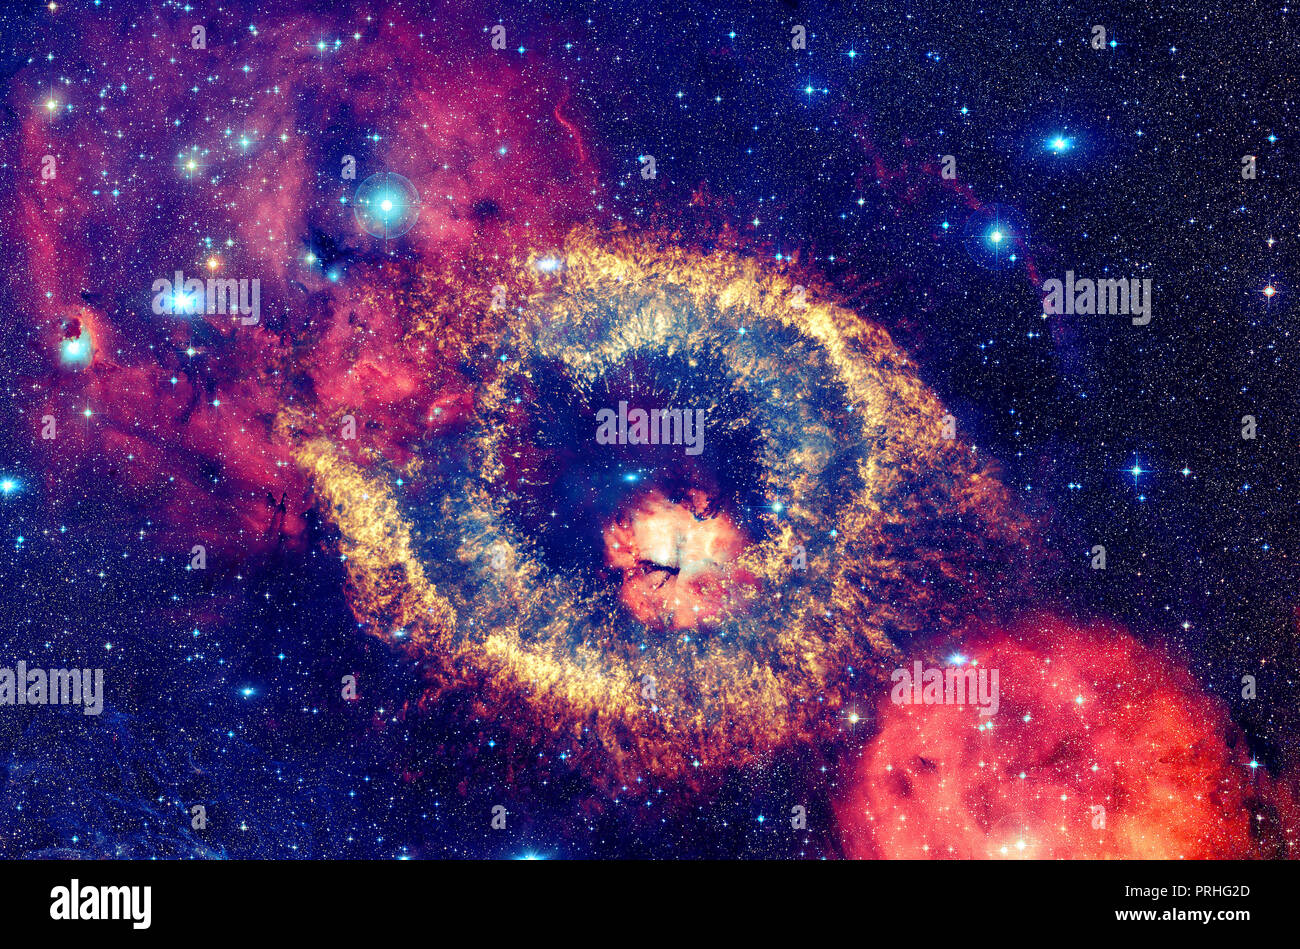 Bright nebula with stars in outer space. Elements of this image furnished by NASA. - Stock Image